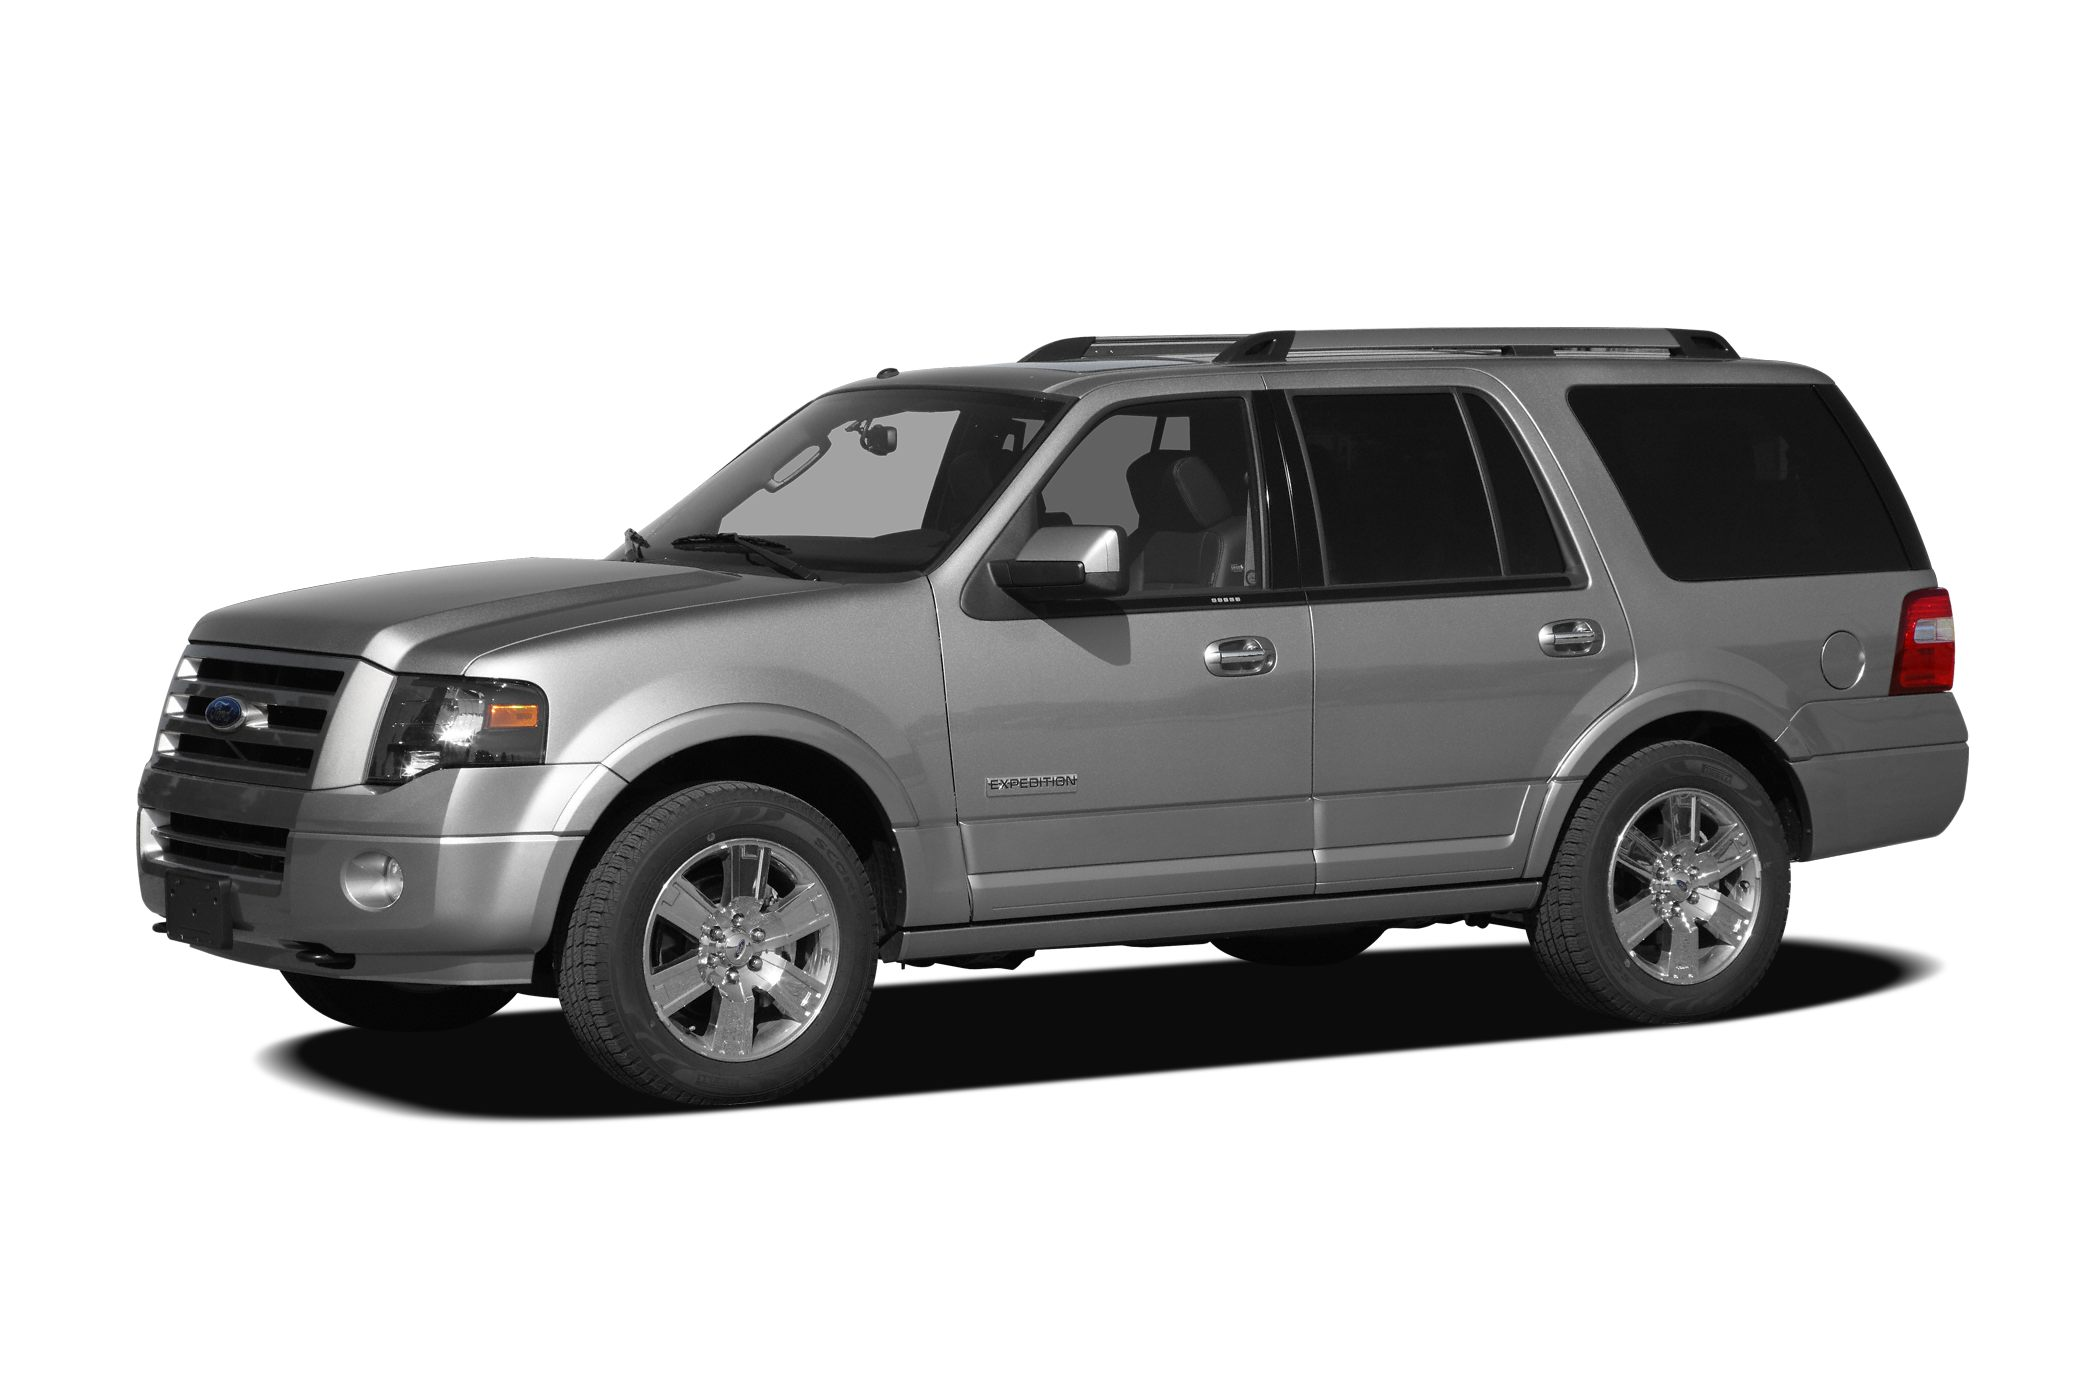 2008 Ford Expedition Limited SUV for sale in Mayfield for $19,900 with 92,365 miles